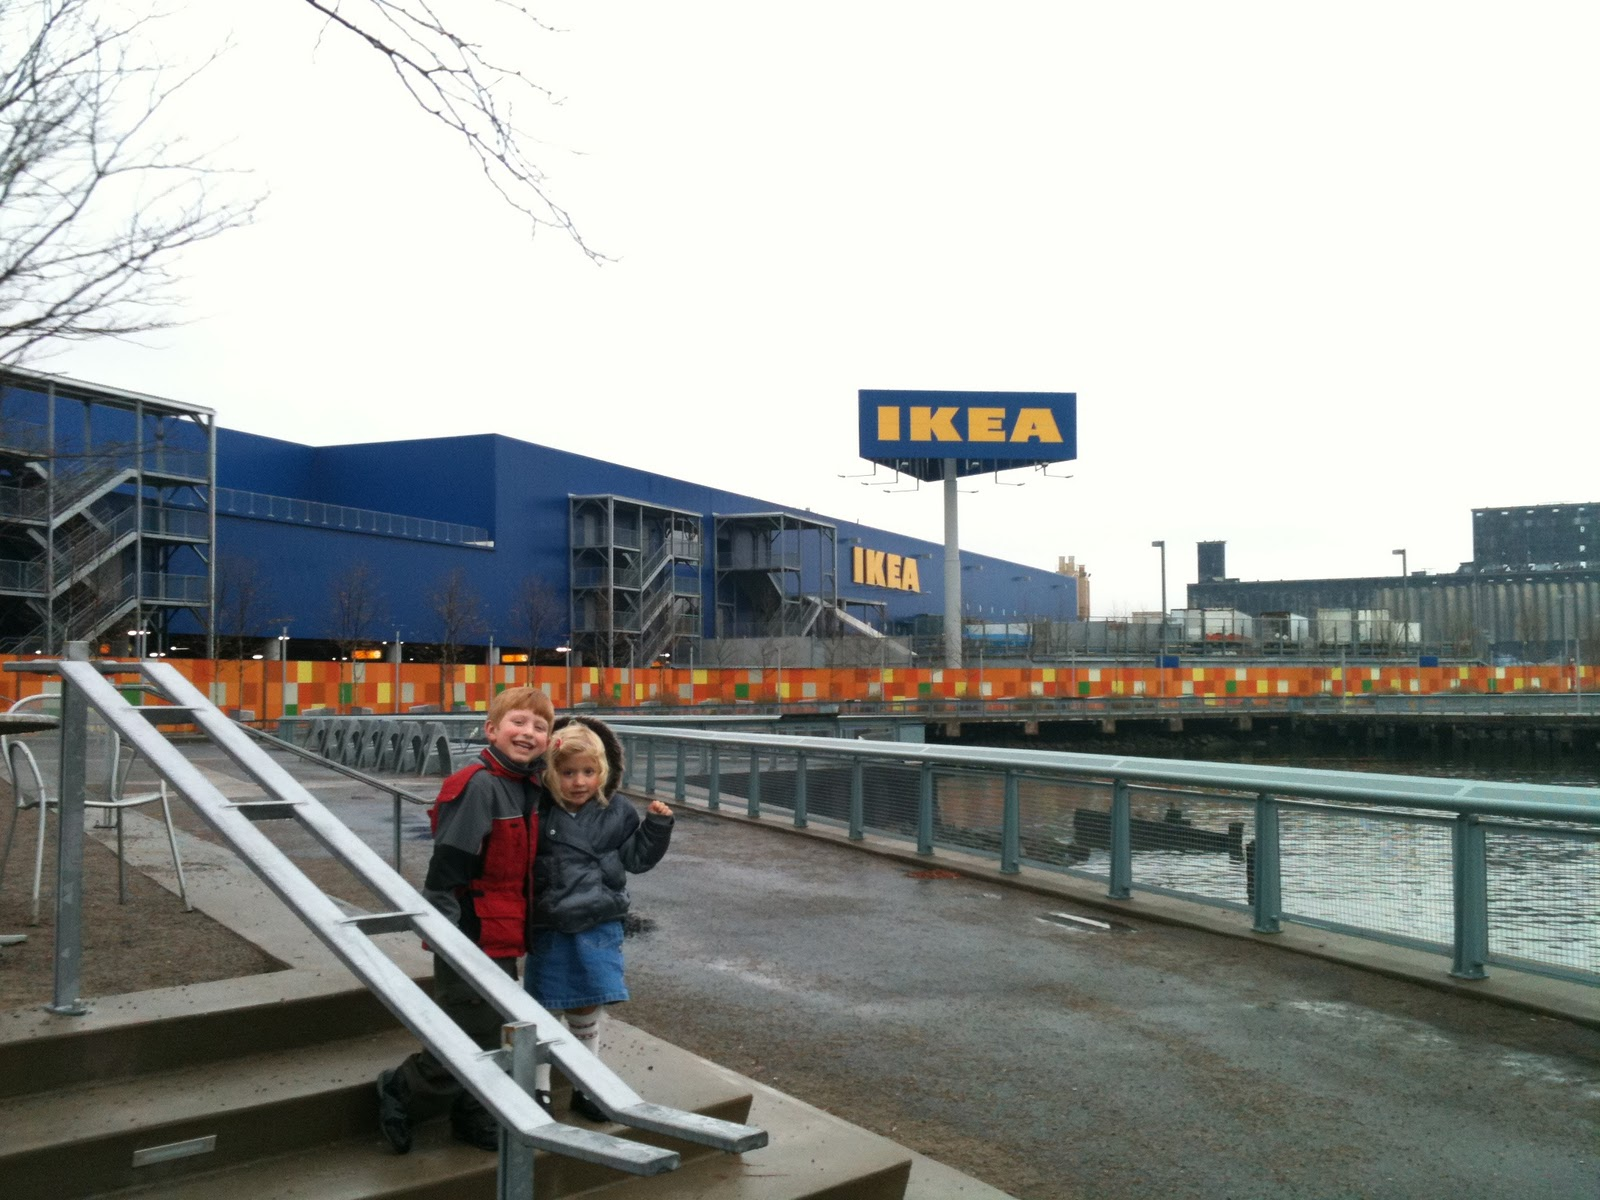 Shanna 39 s adventures ikea brooklyn there and back again for Brooklyn ikea heures